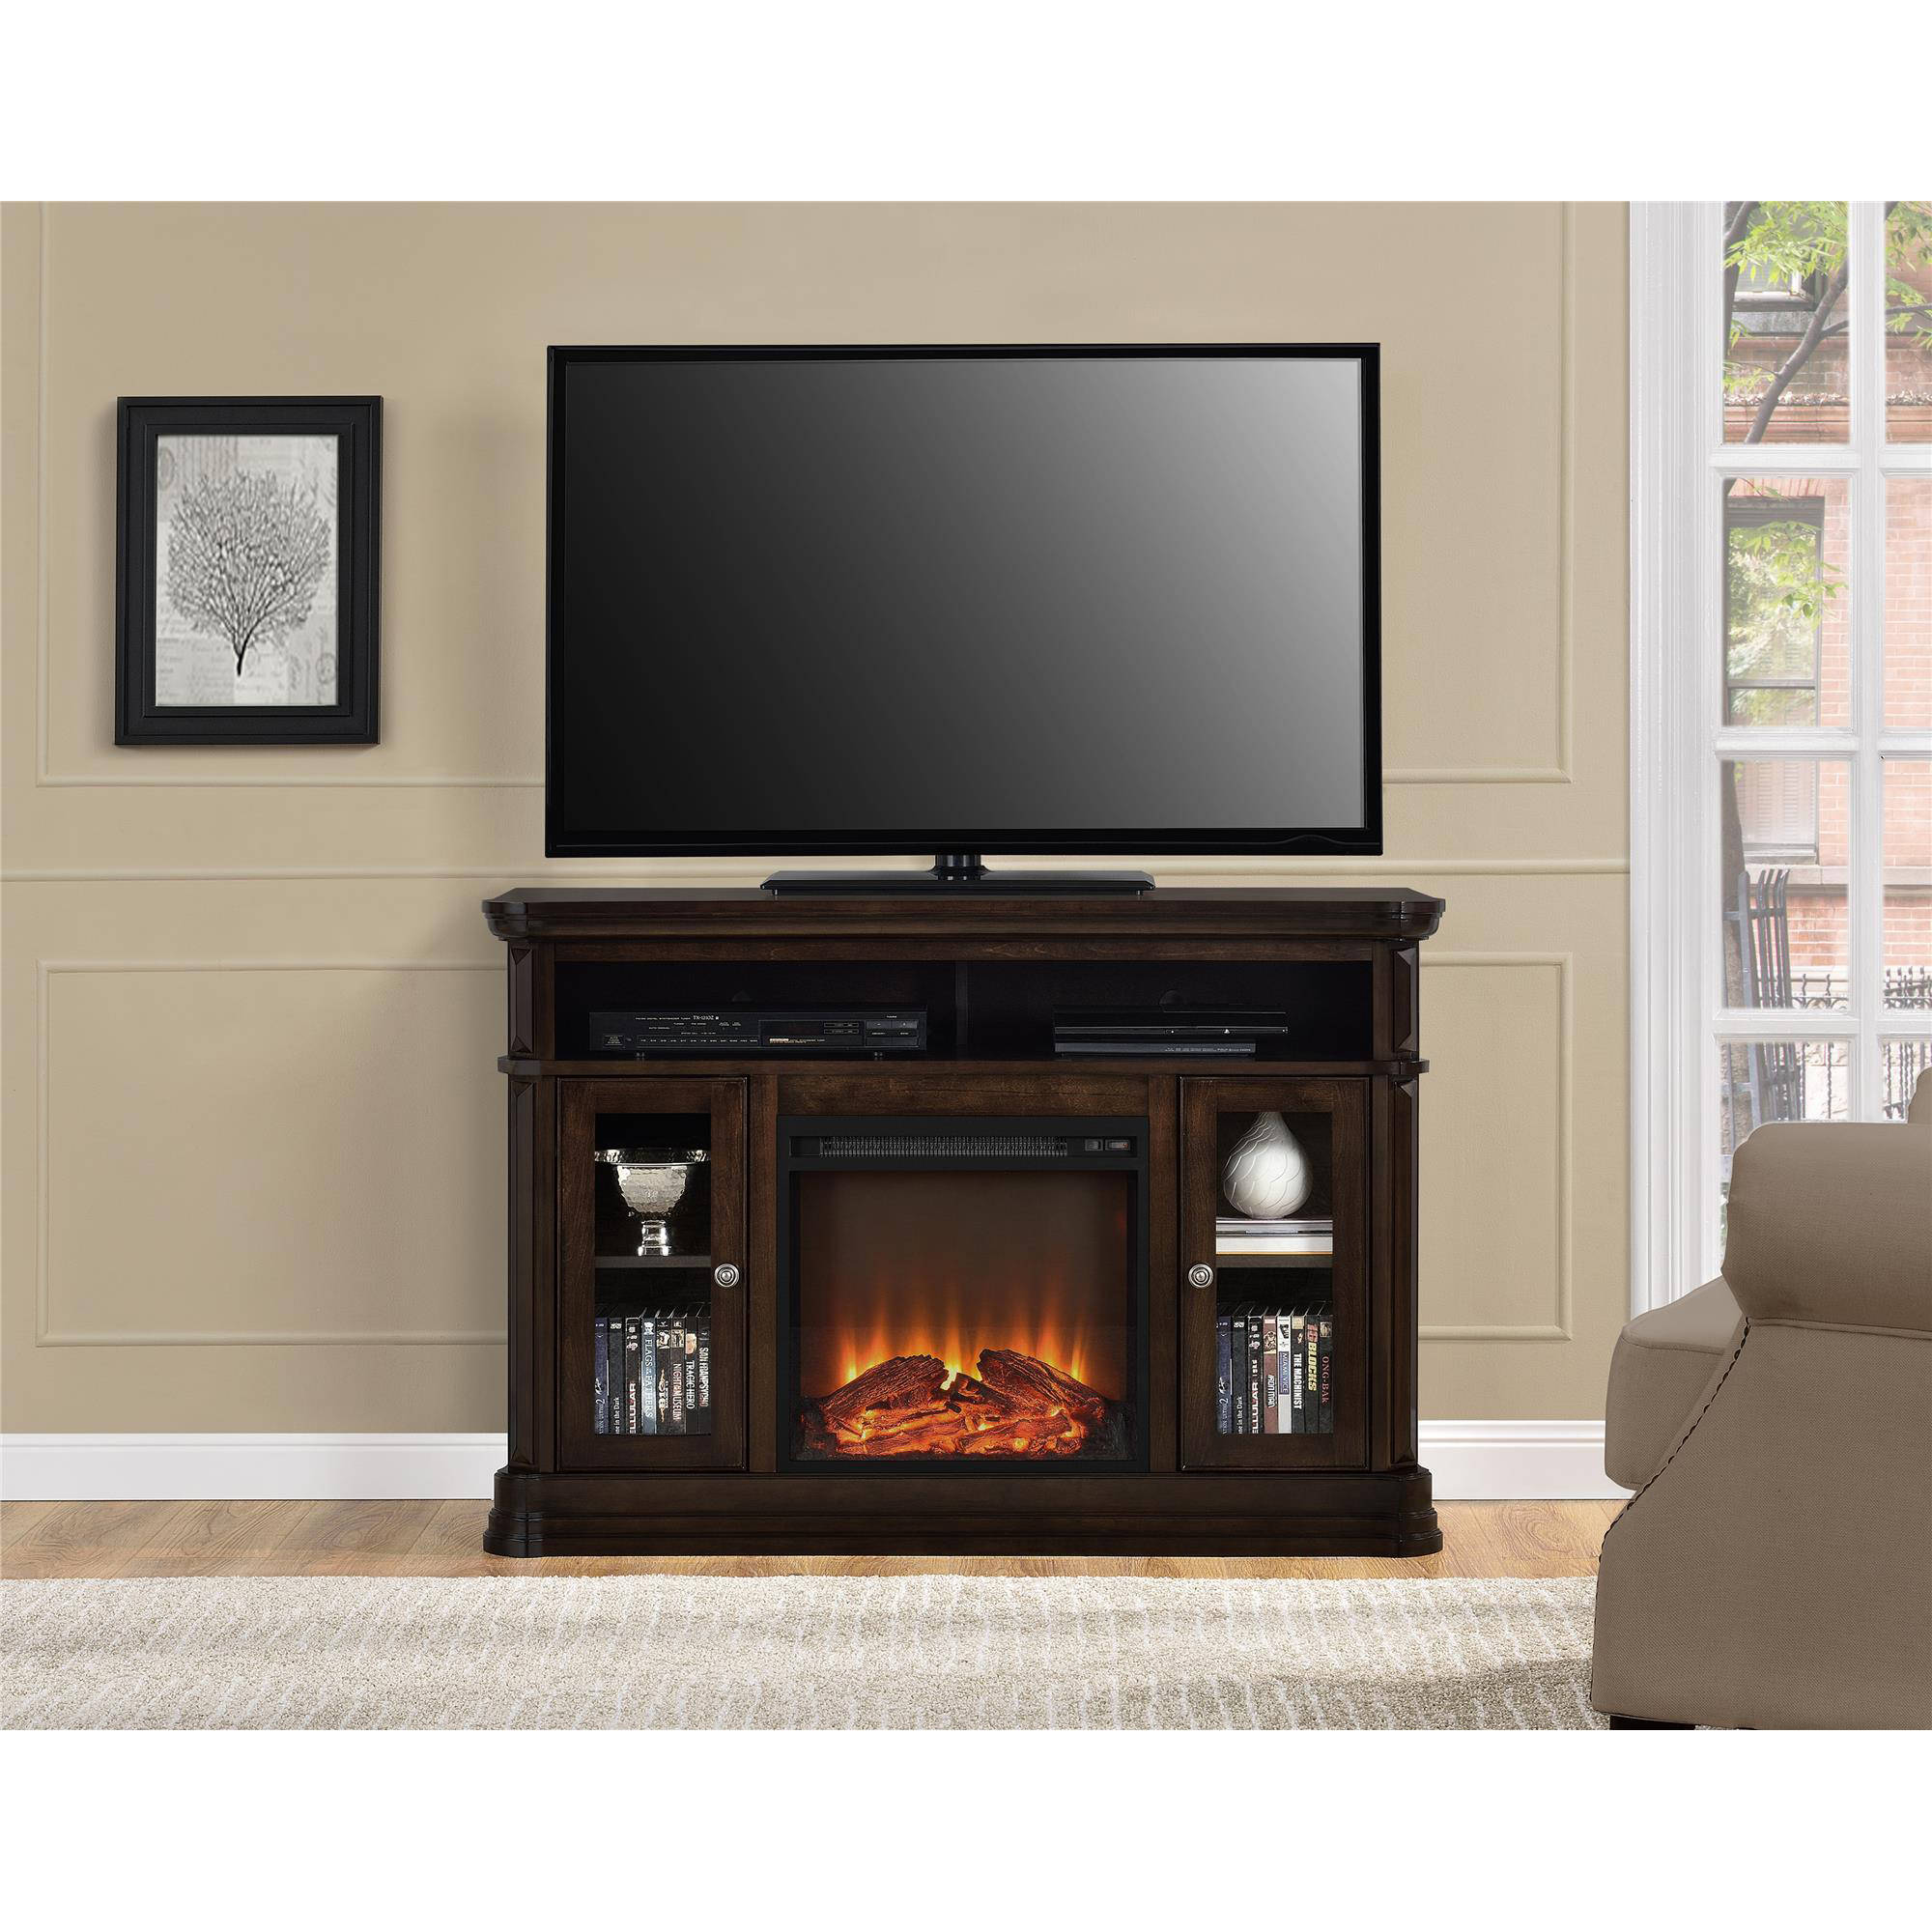 "Brooklyn Fireplace TV Console for TVs up to 50"", Espresso"